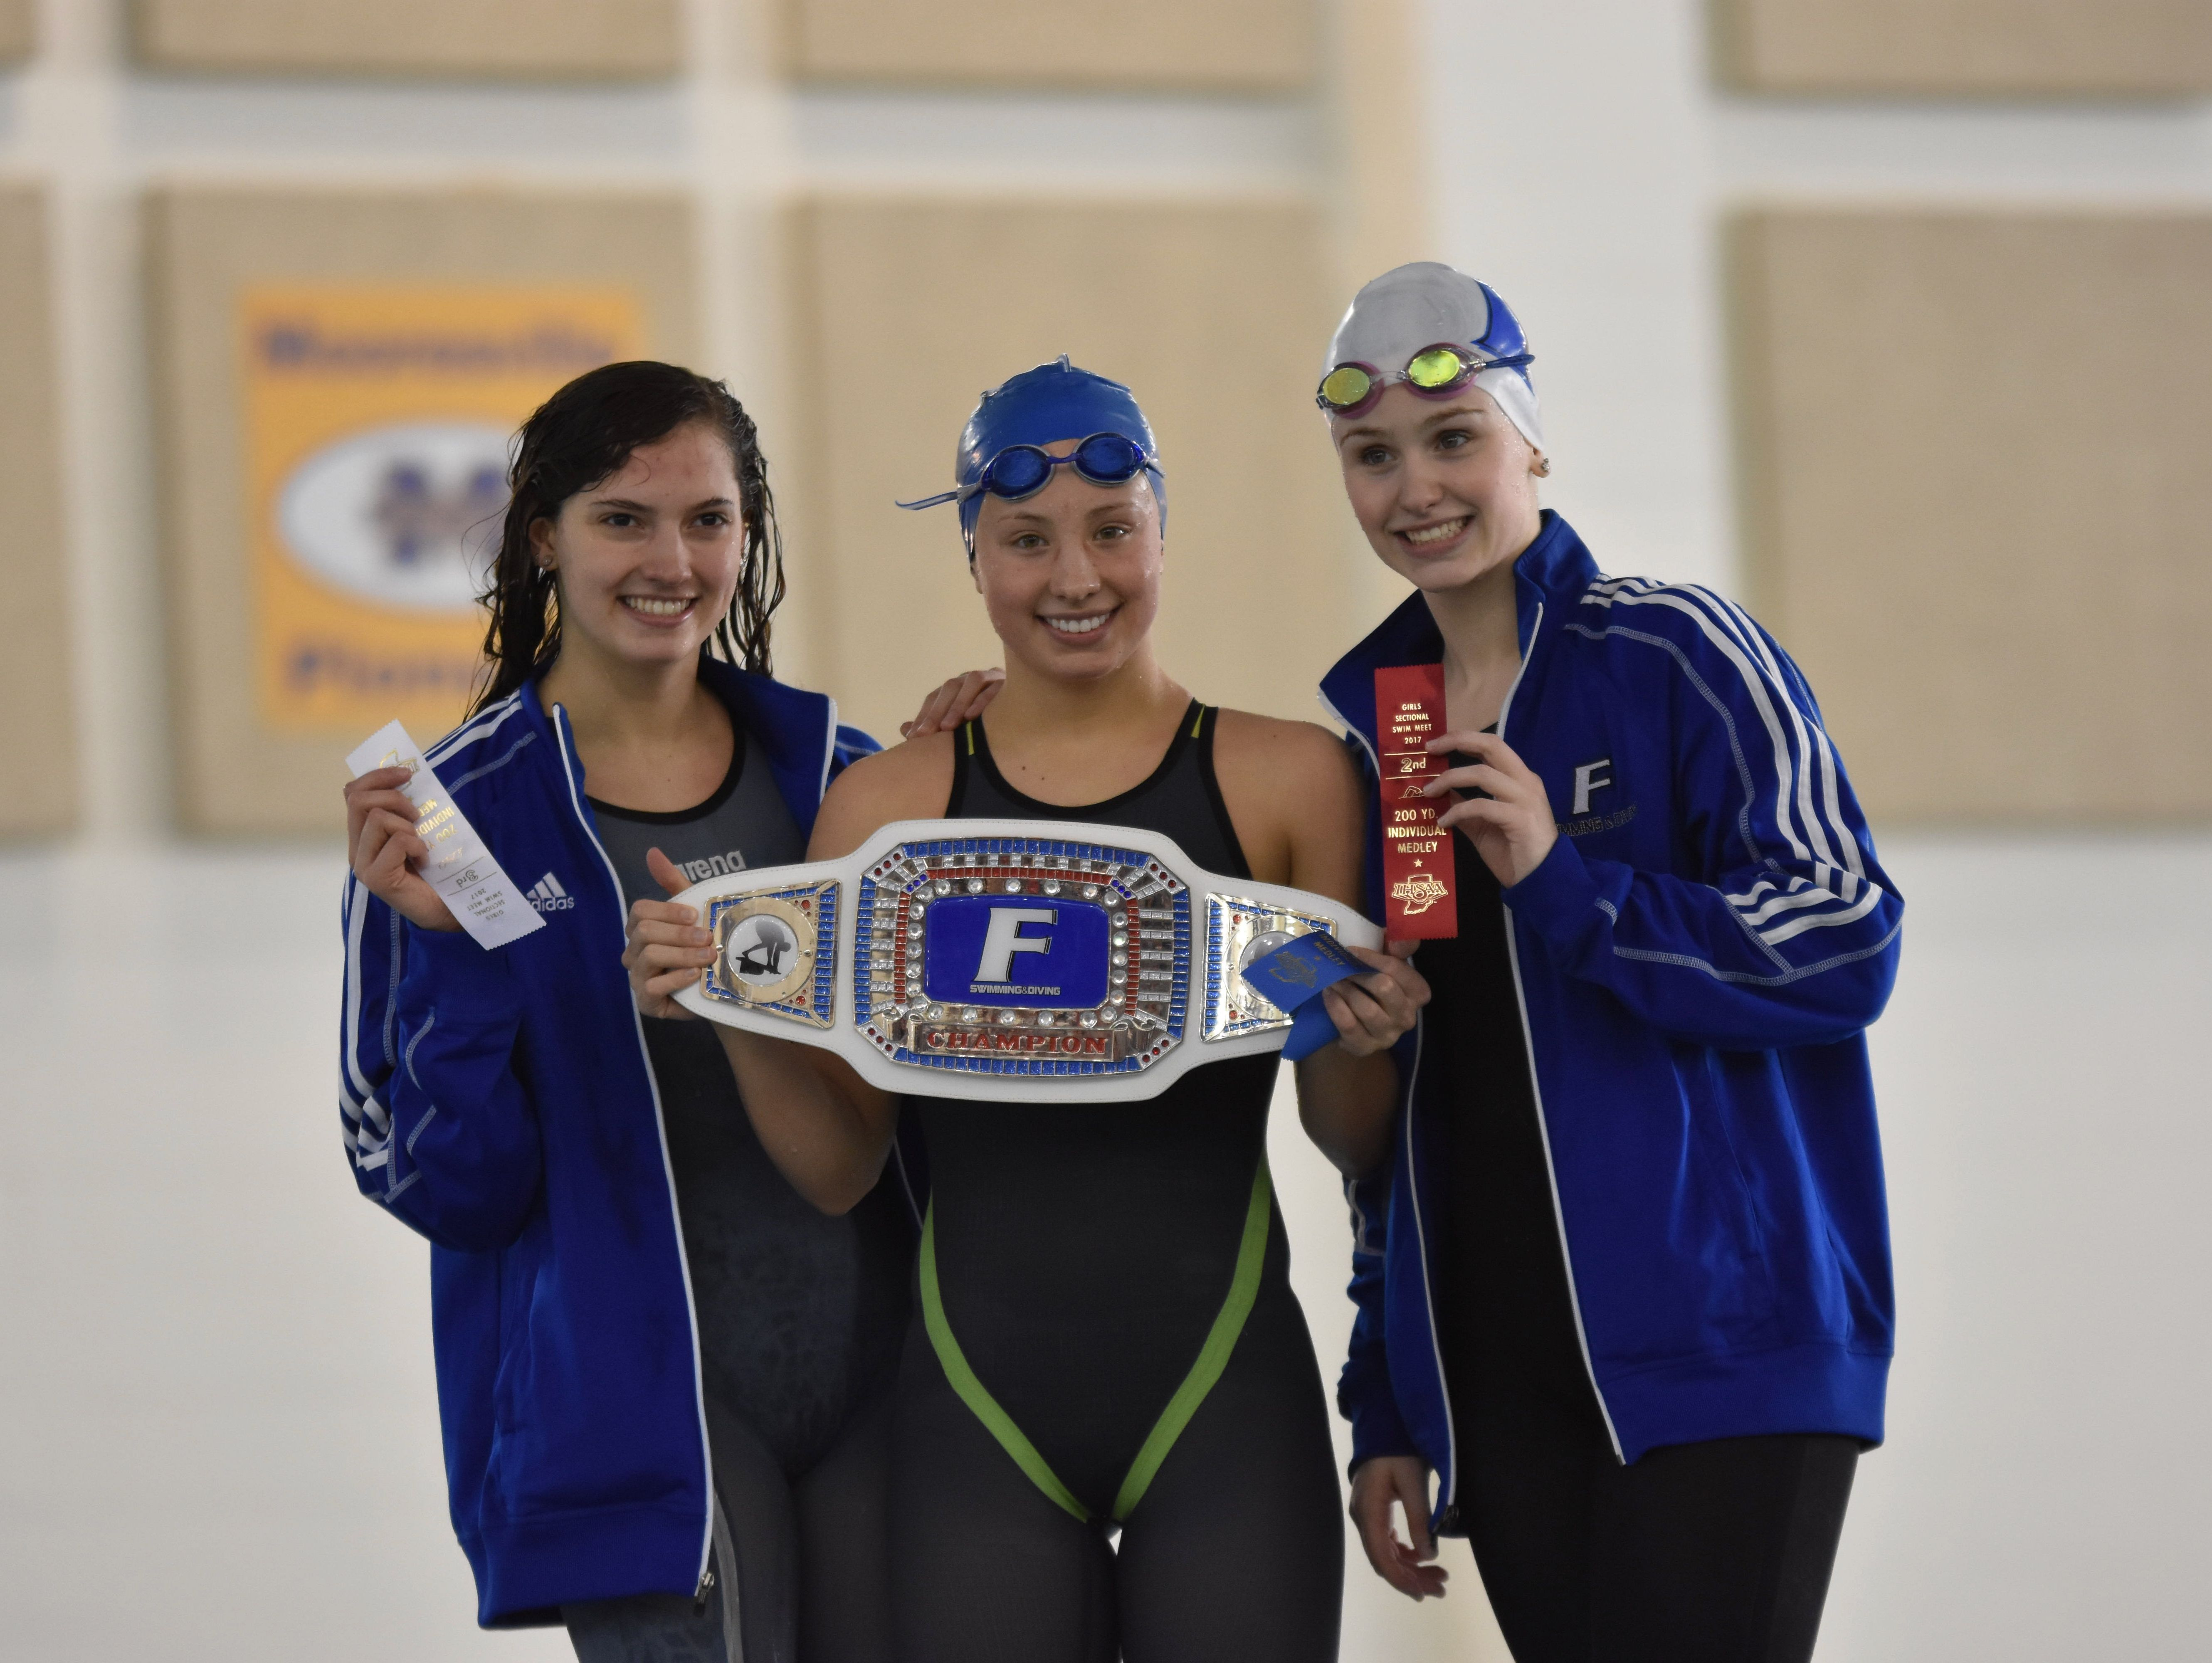 Gabby Hoffman (left, 3rd place), Ali Terrell (middle, 1st place), Anna McCahill (right, 2nd place) share the podium after the 200 IM.